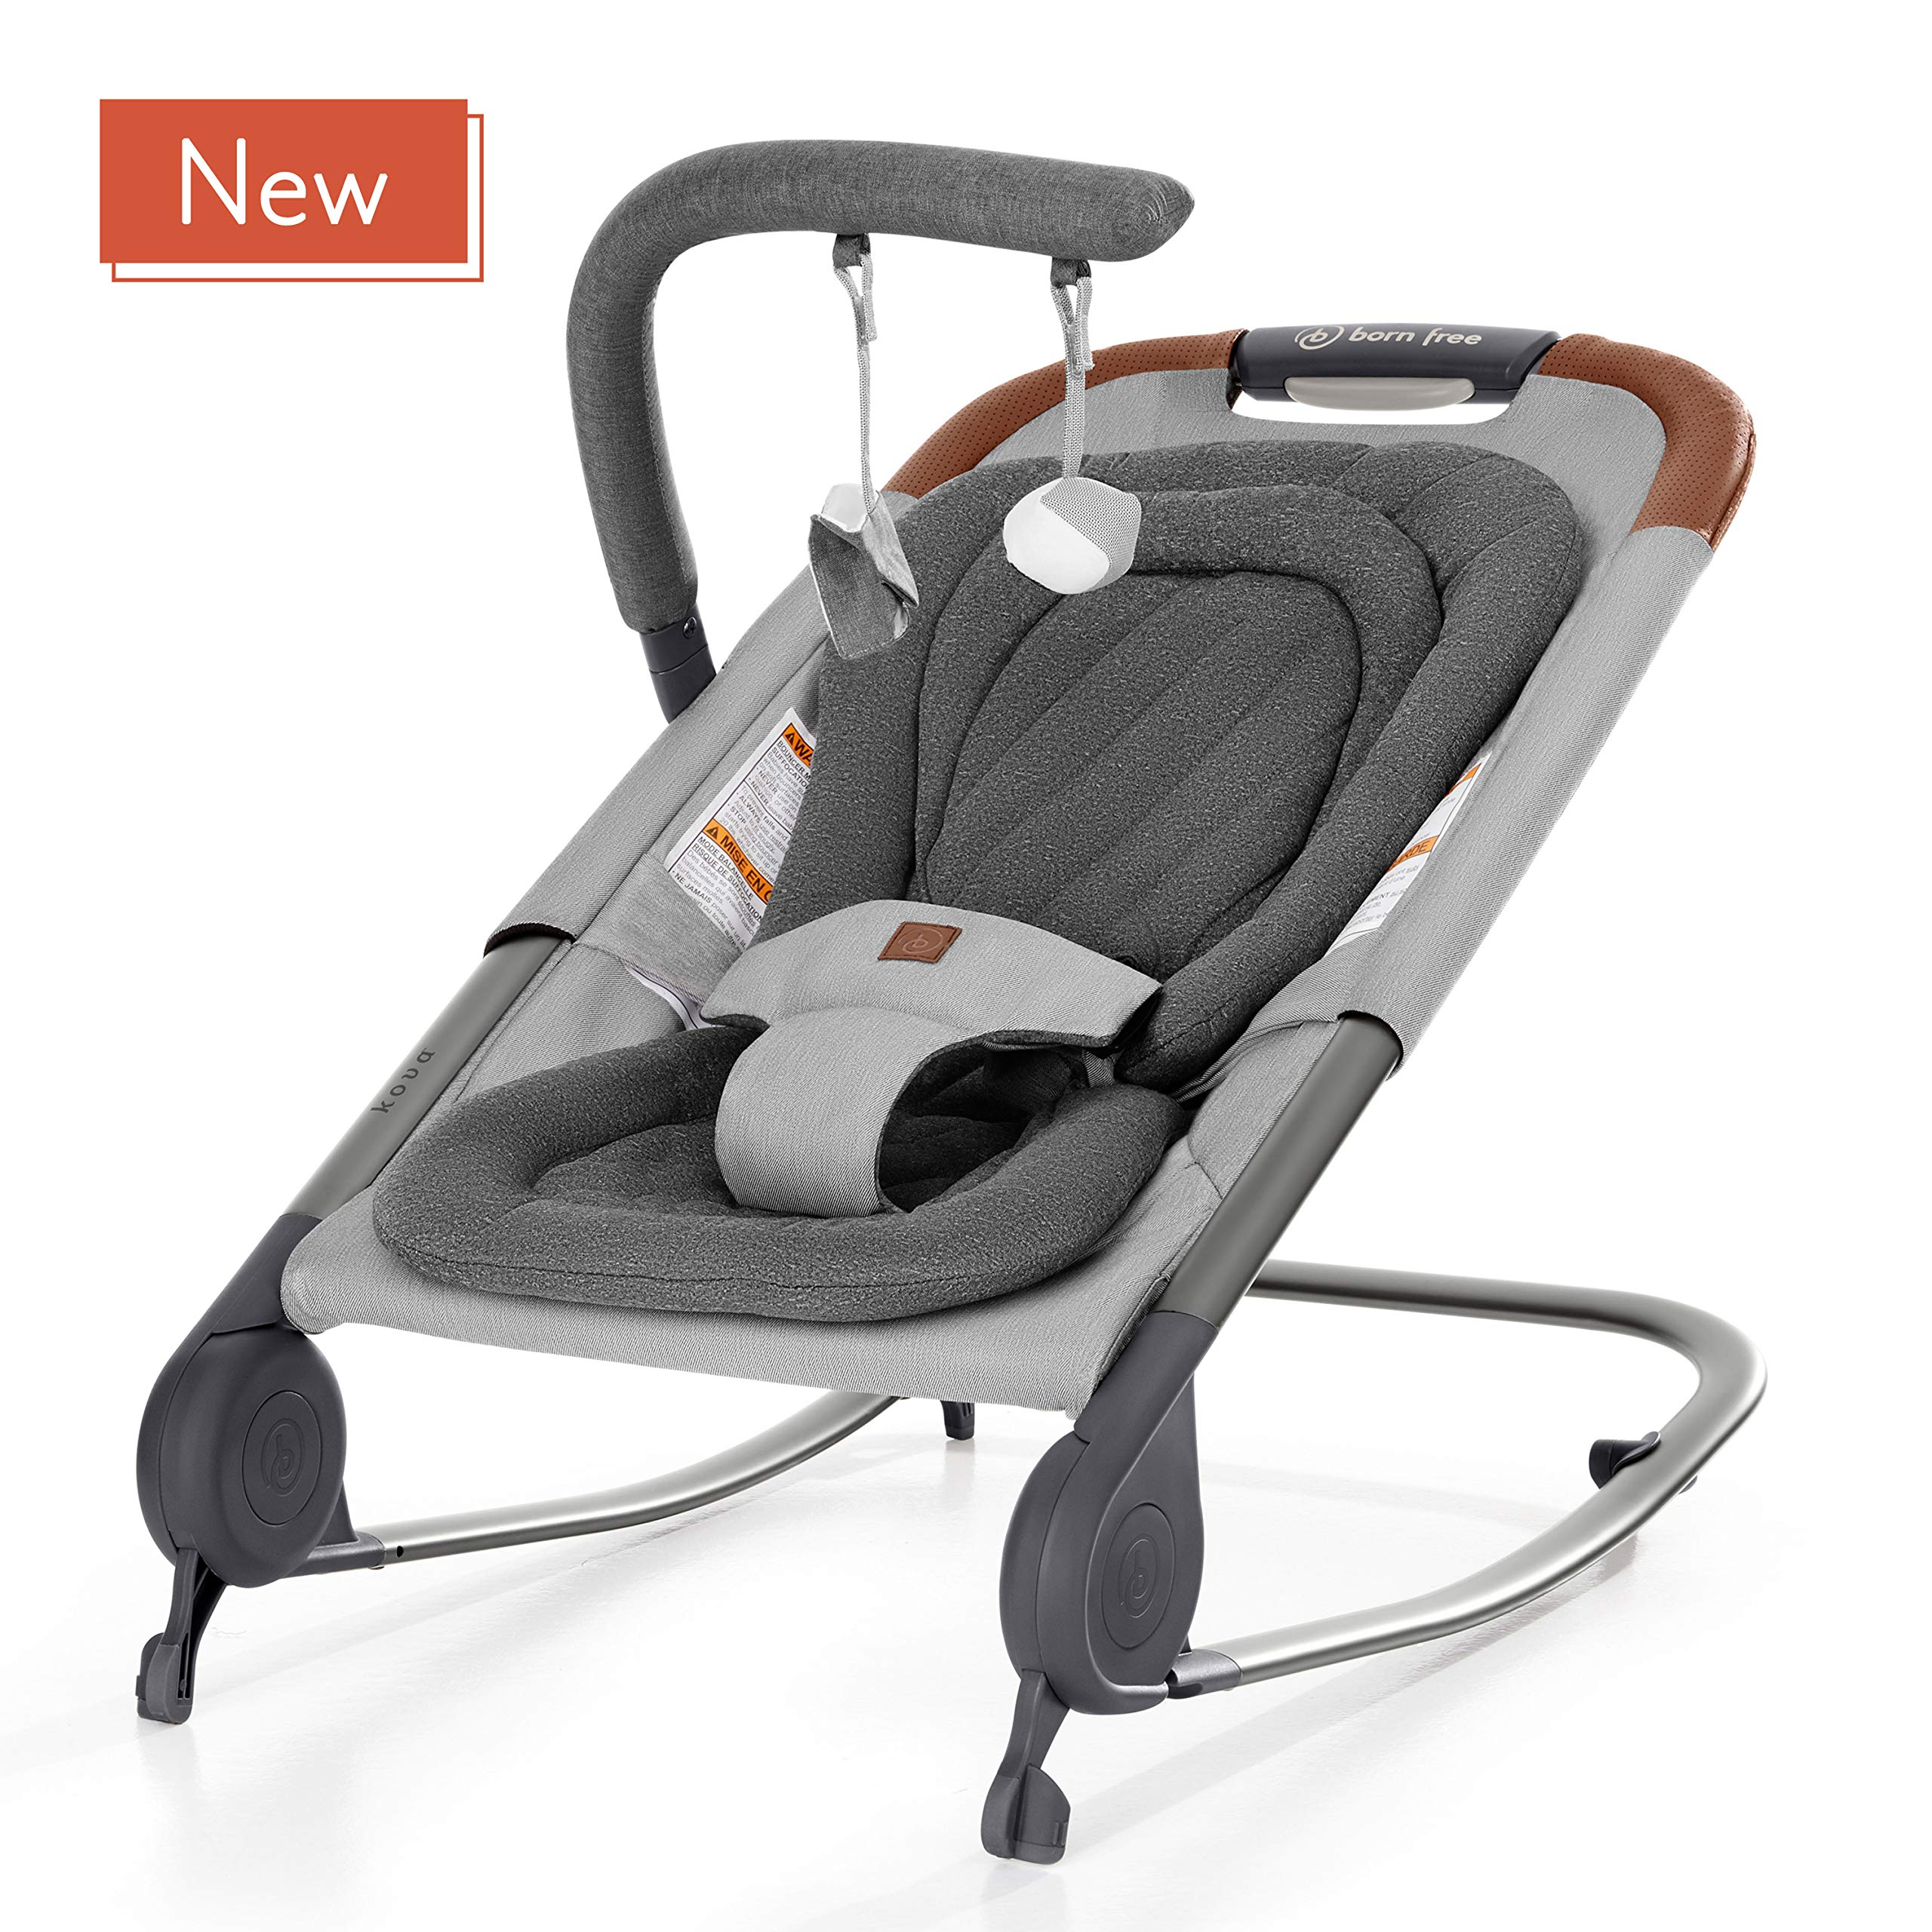 born free KOVA Baby Bouncer -  Baby Rocker with Two Modes of Use, Removable Toys and Compact Fold for Storage or Travel – Easy to Clean, Machine Washable Fabrics